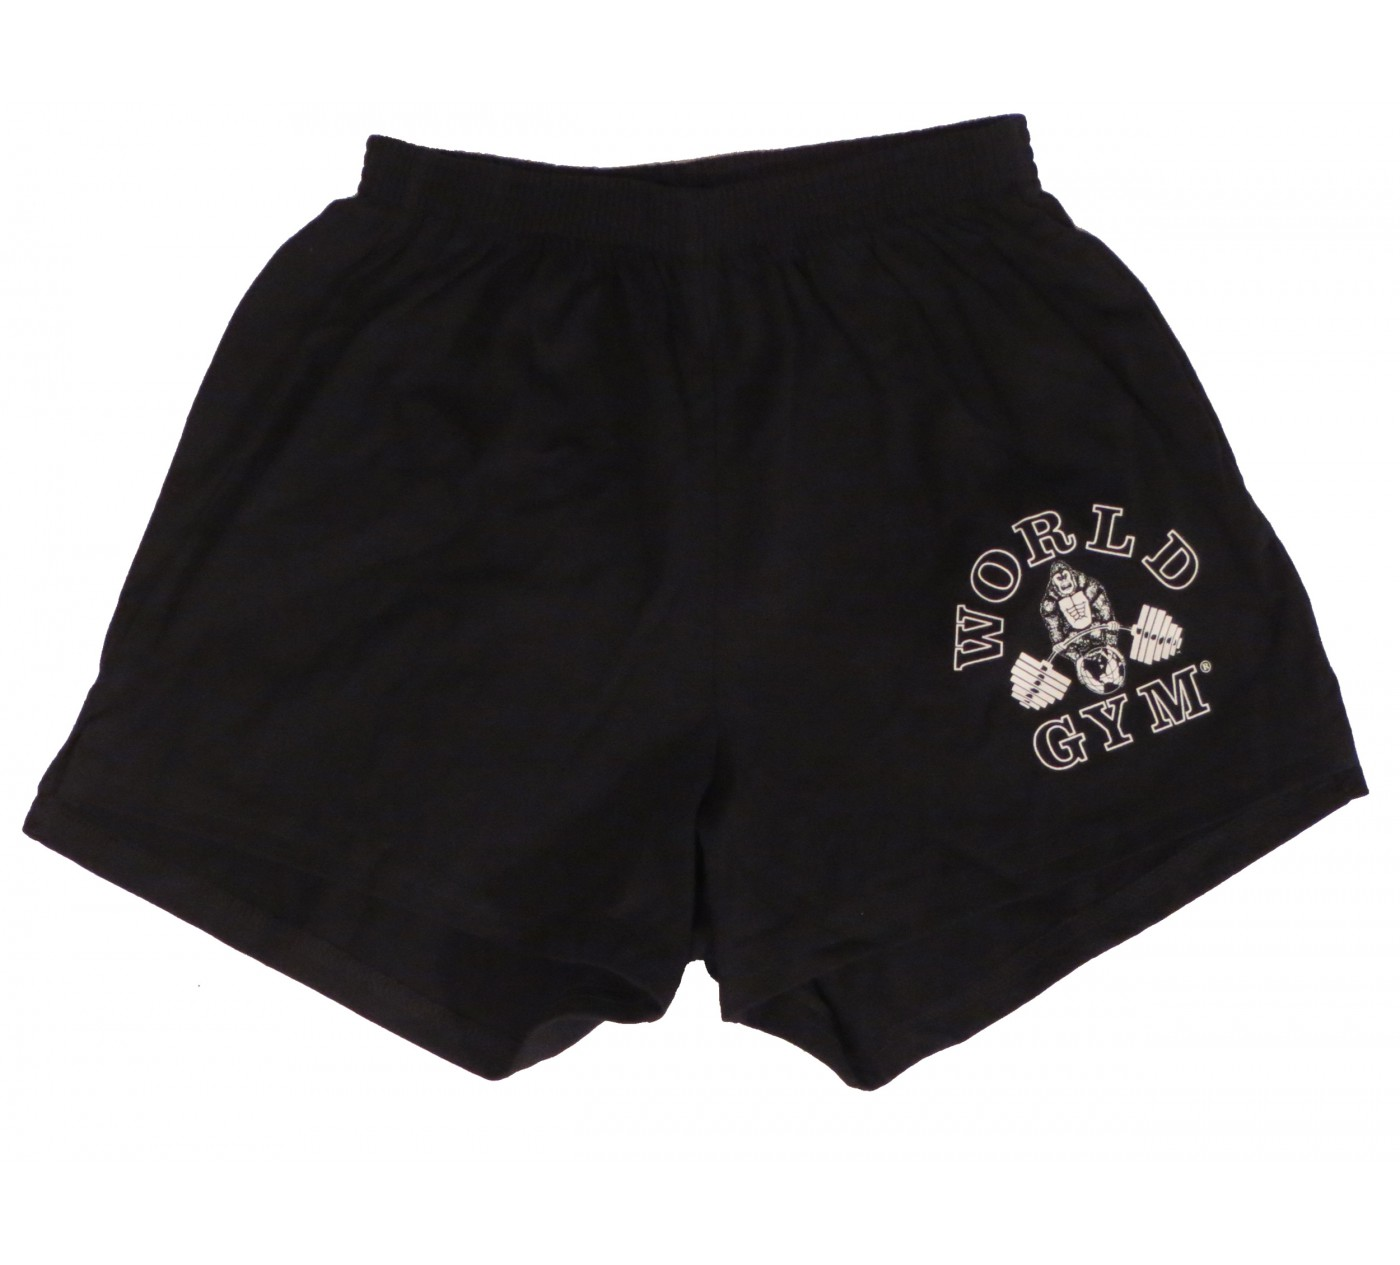 W601 World Gym Shorts